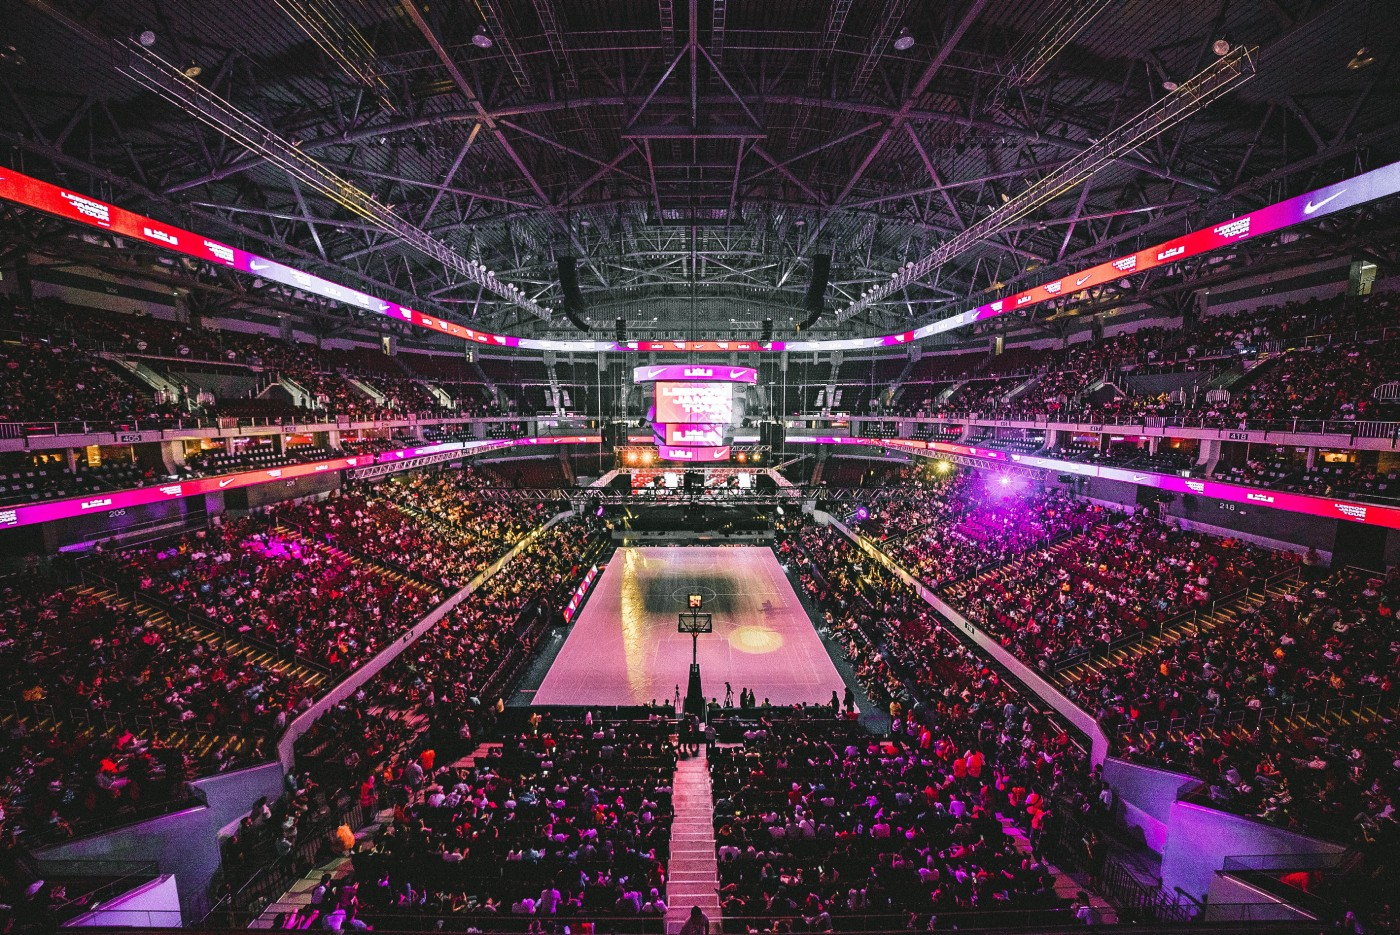 Fans pack a basketball arena in anticipation of an upcoming game.